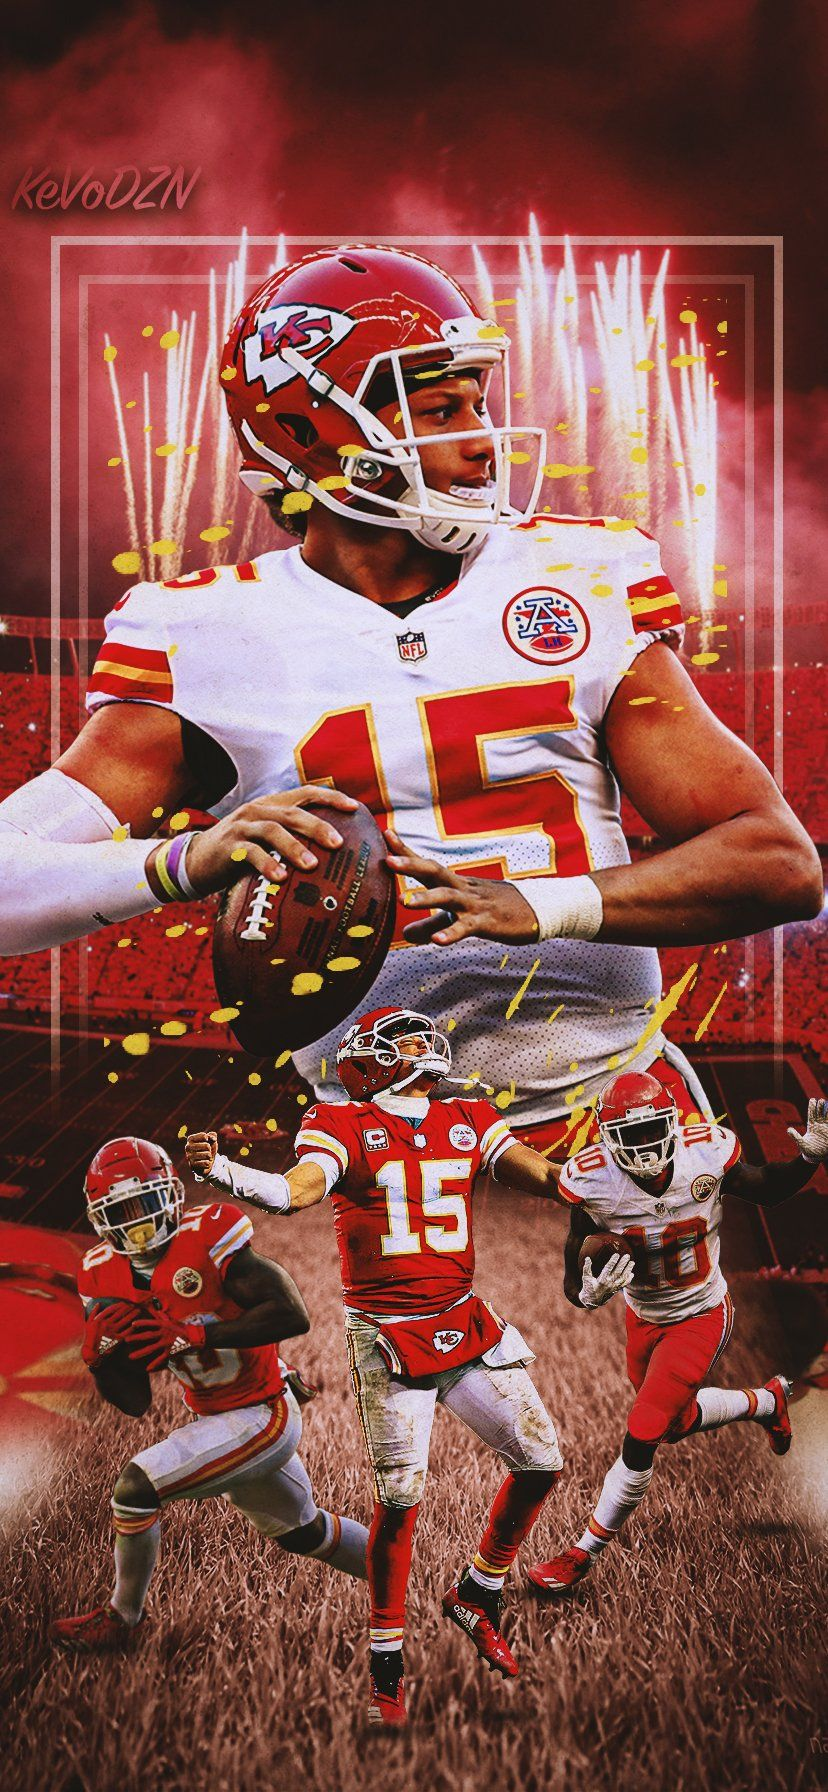 Chiefs Mvp Nfl In 2020 Kansas City Chiefs Football Chiefs Football Kc Chiefs Football